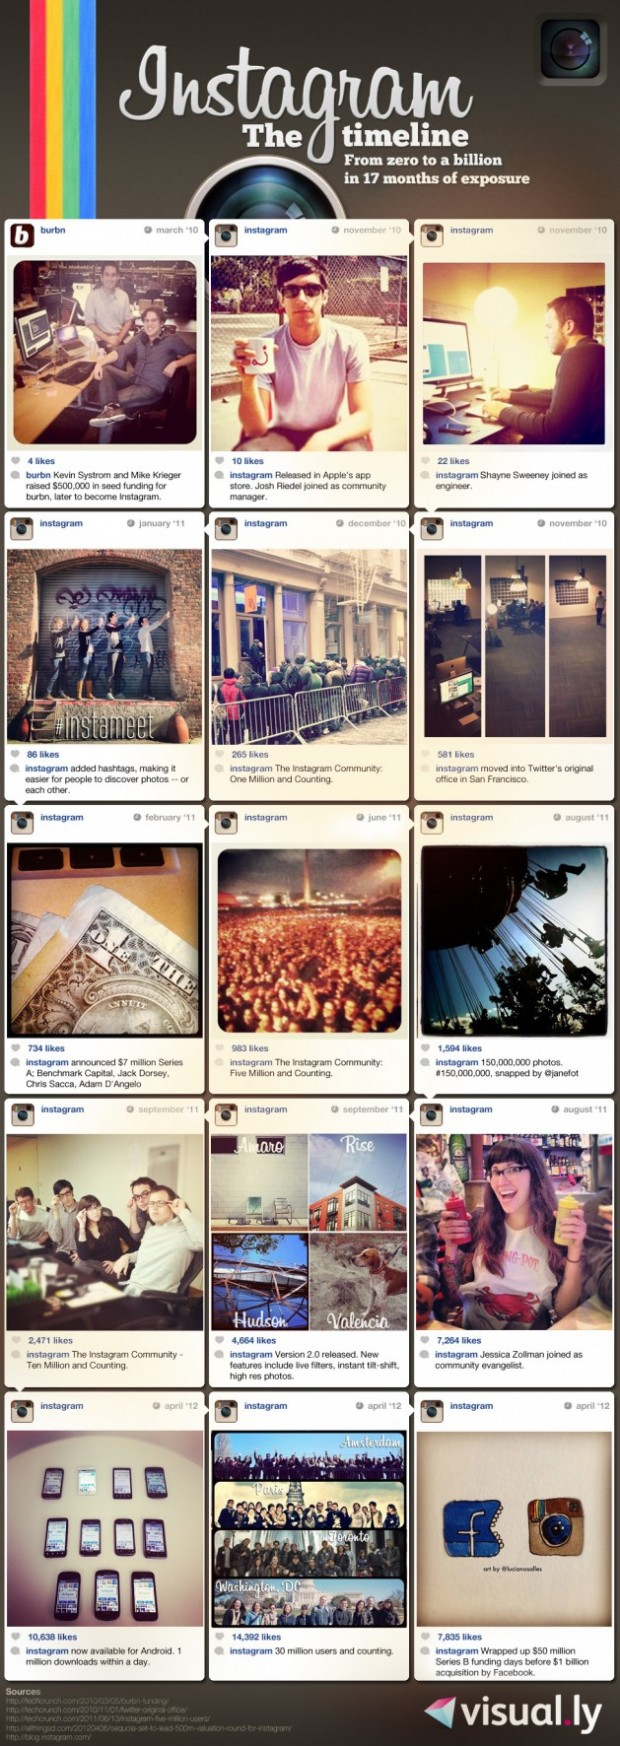 Instagram:17 Months And $1 Billion Later [Infographic]